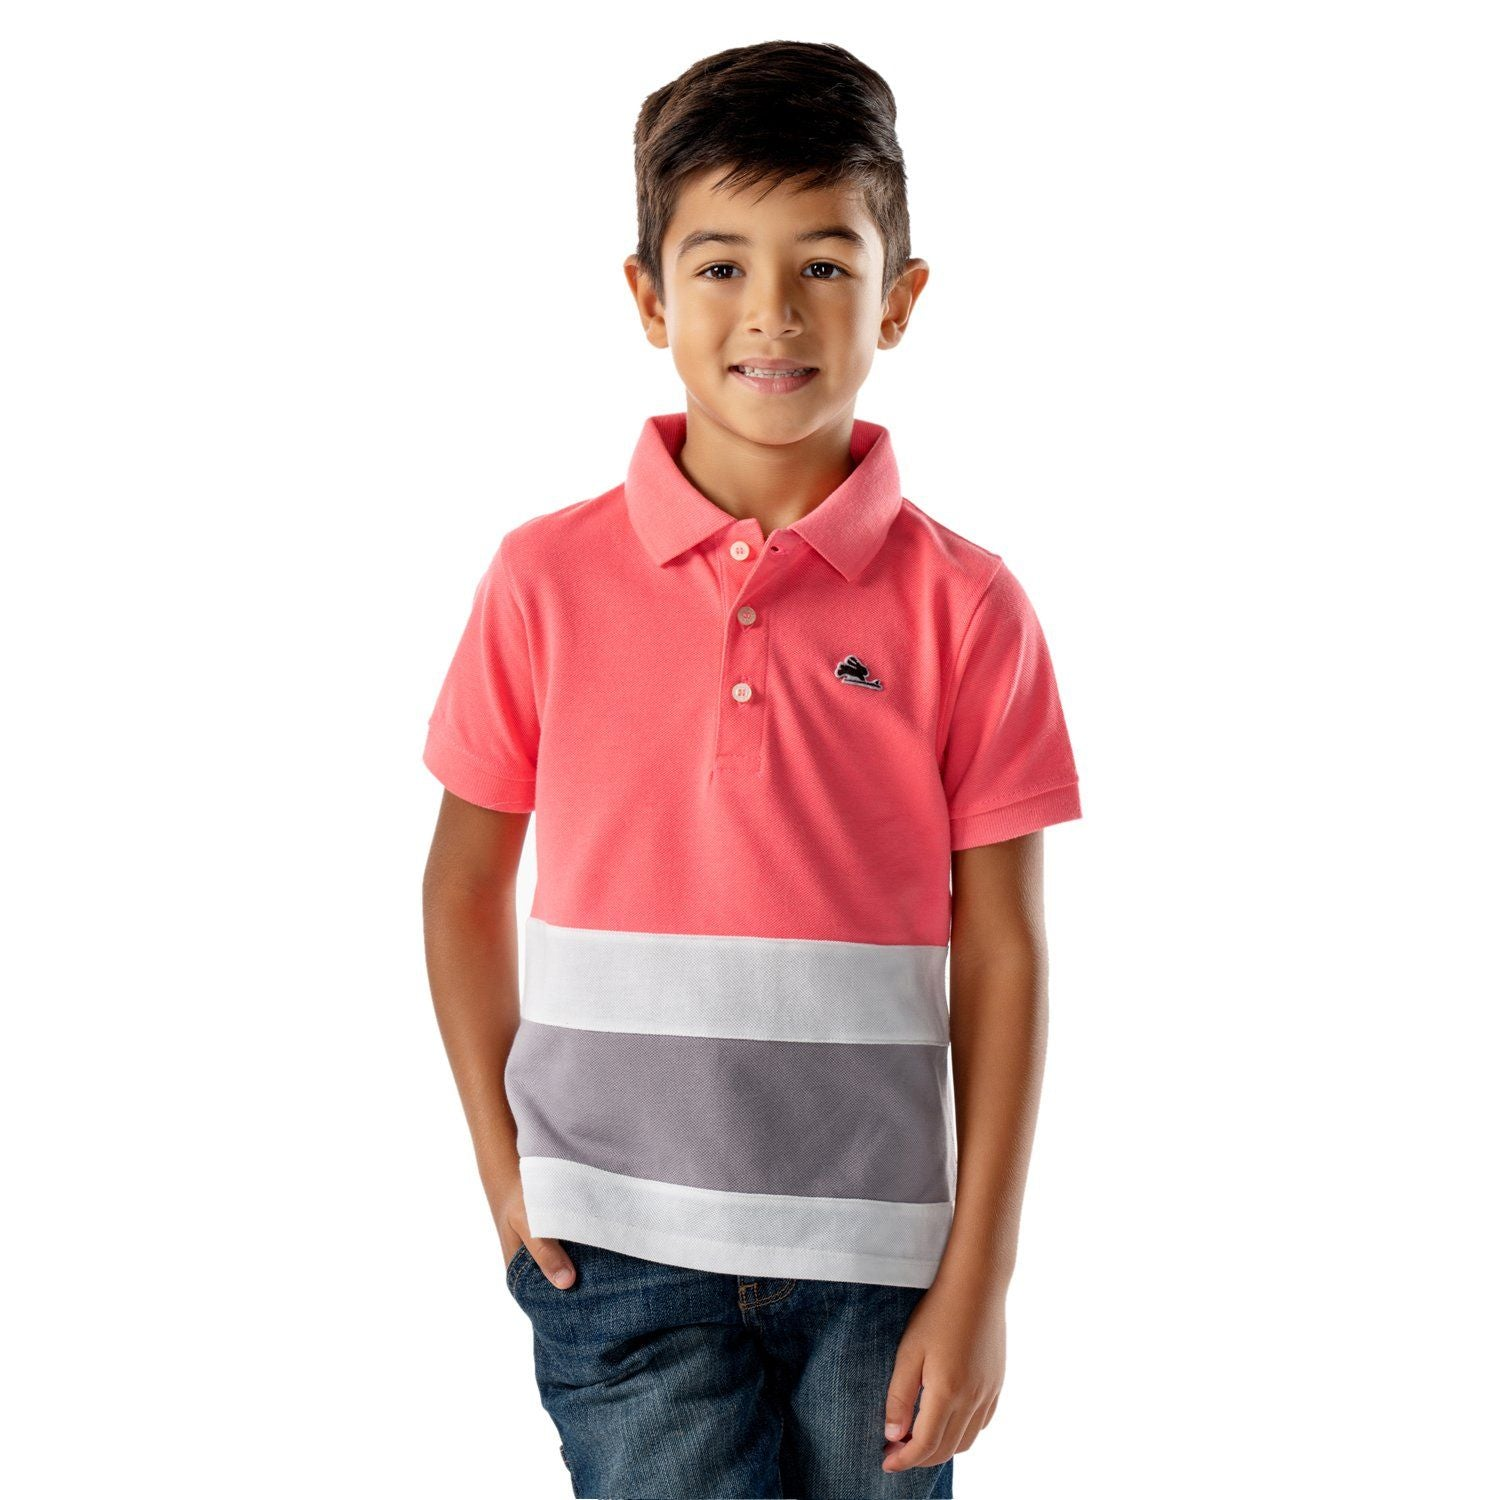 Master Polo for Boys